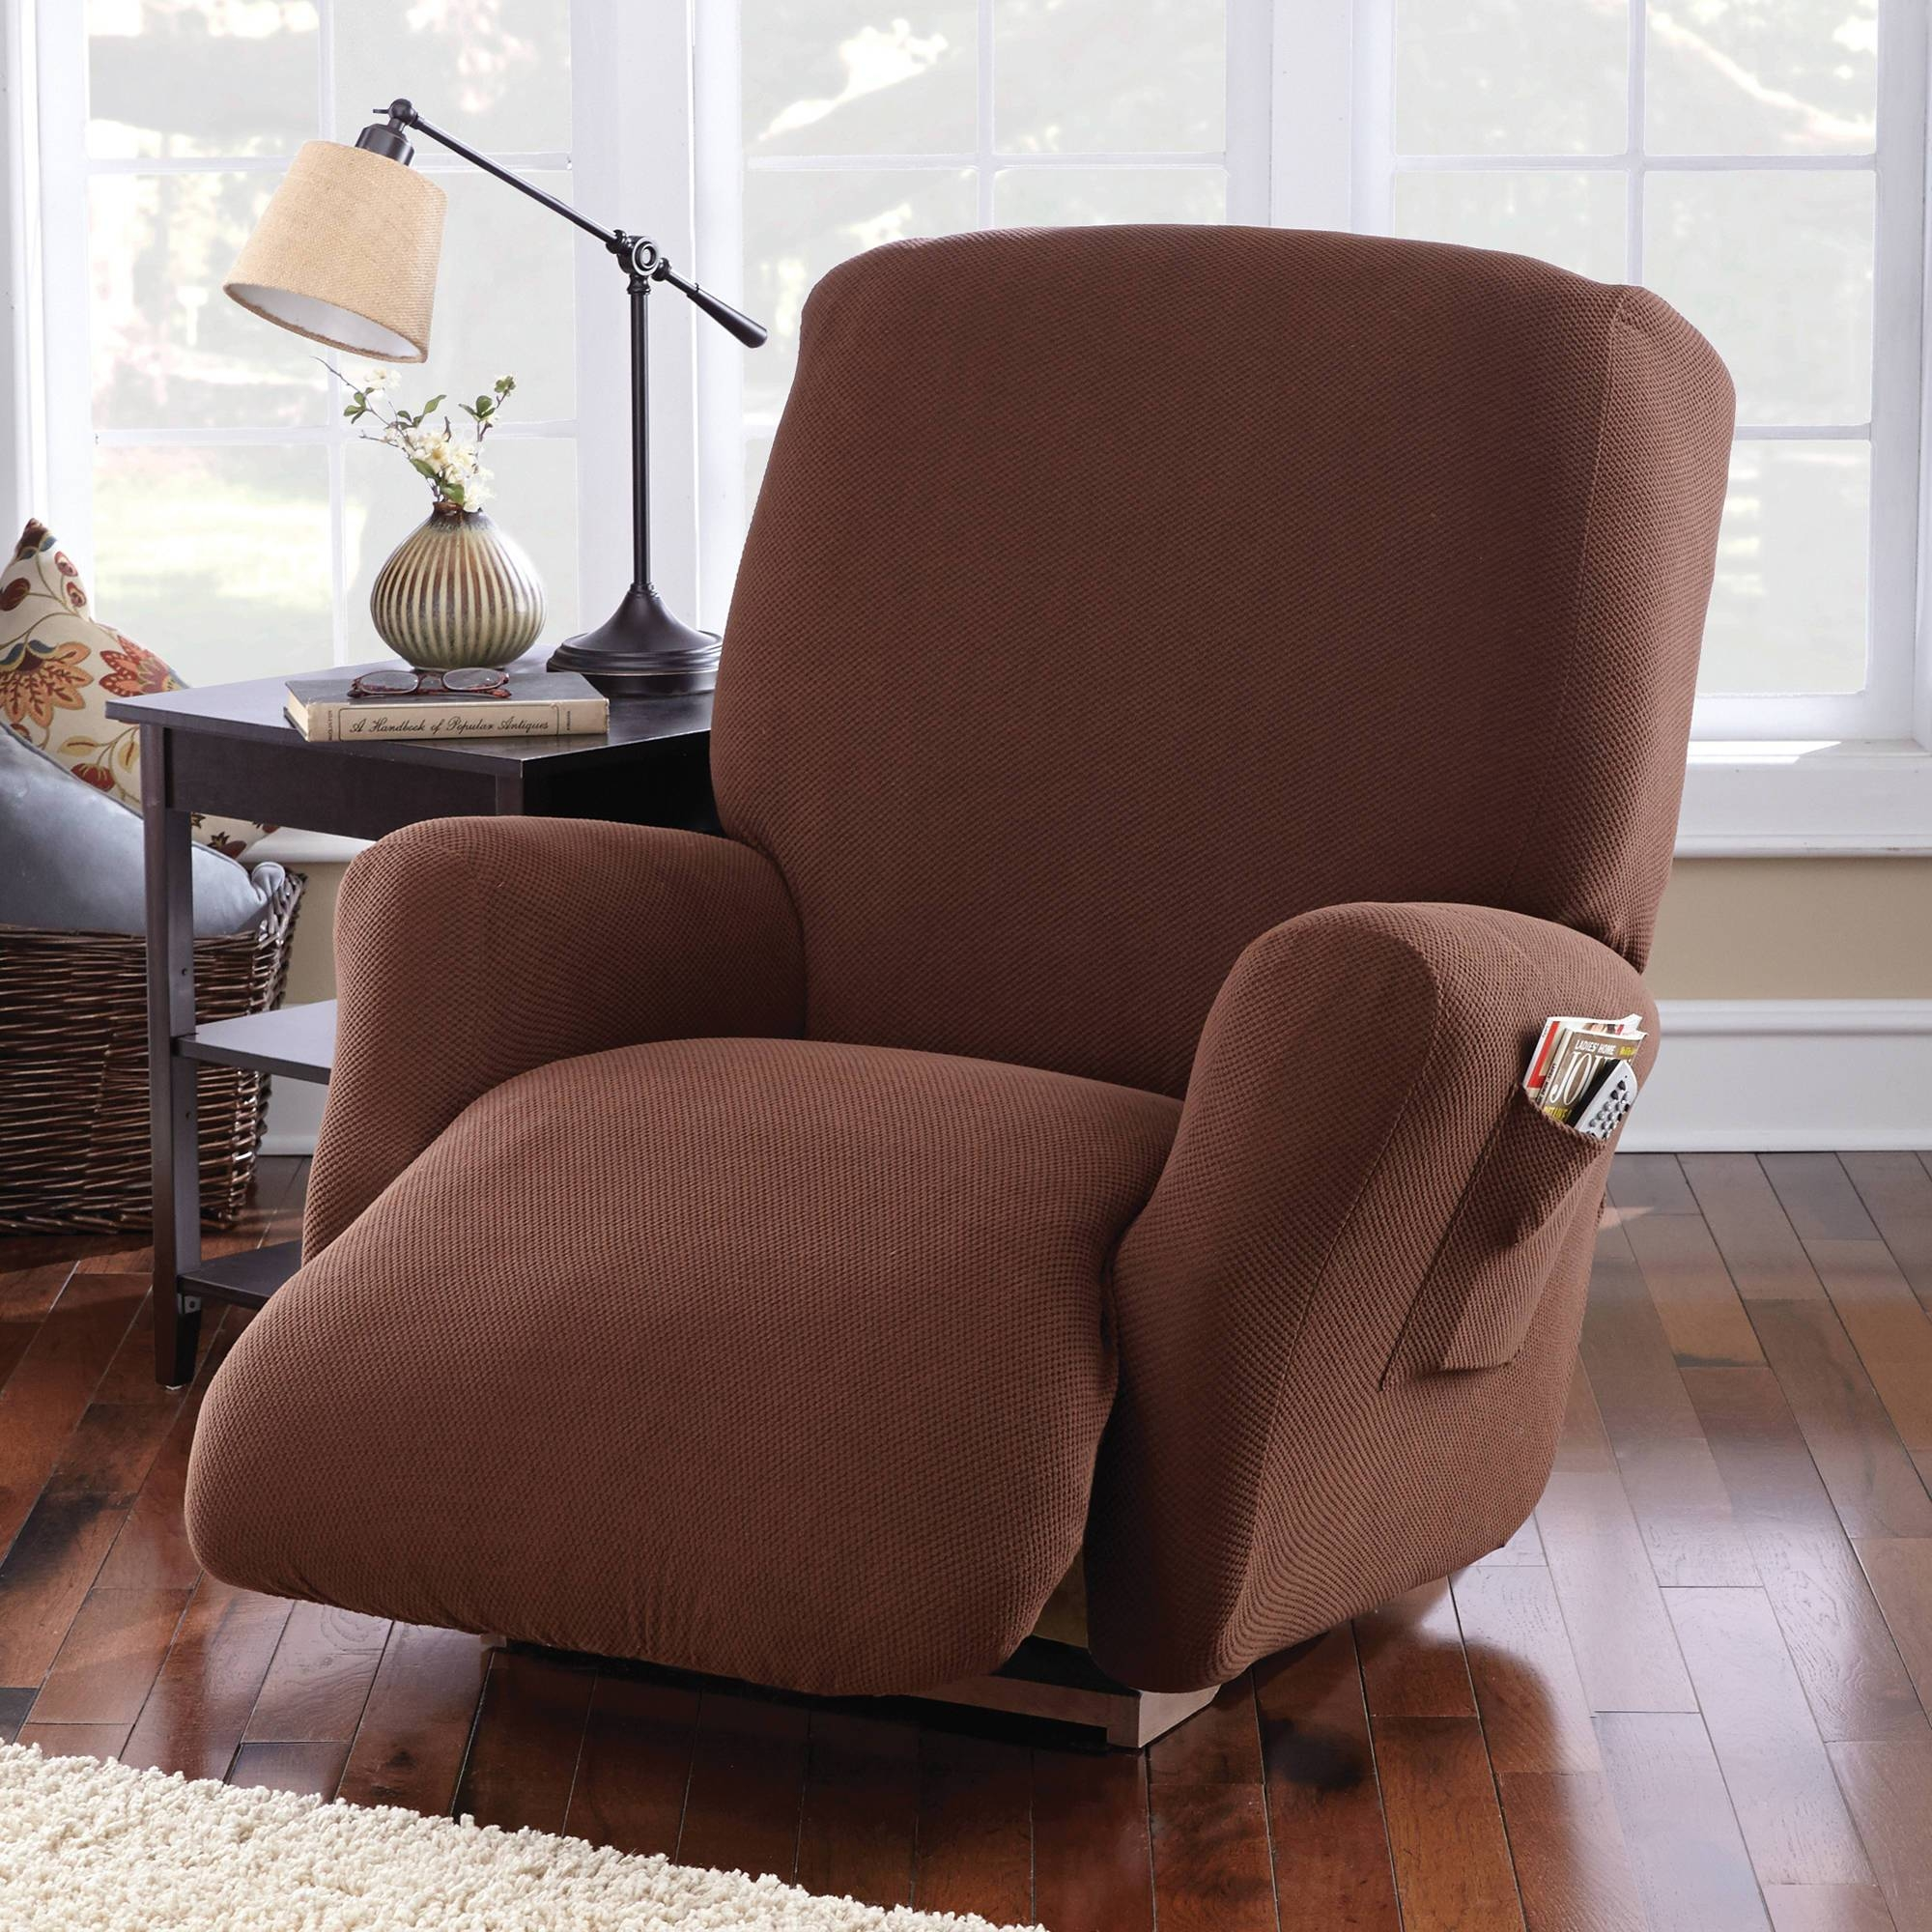 Mainstays Pixel Recliner Slipcover - Walmart pertaining to Slipcover For Recliner Sofas (Image 3 of 15)